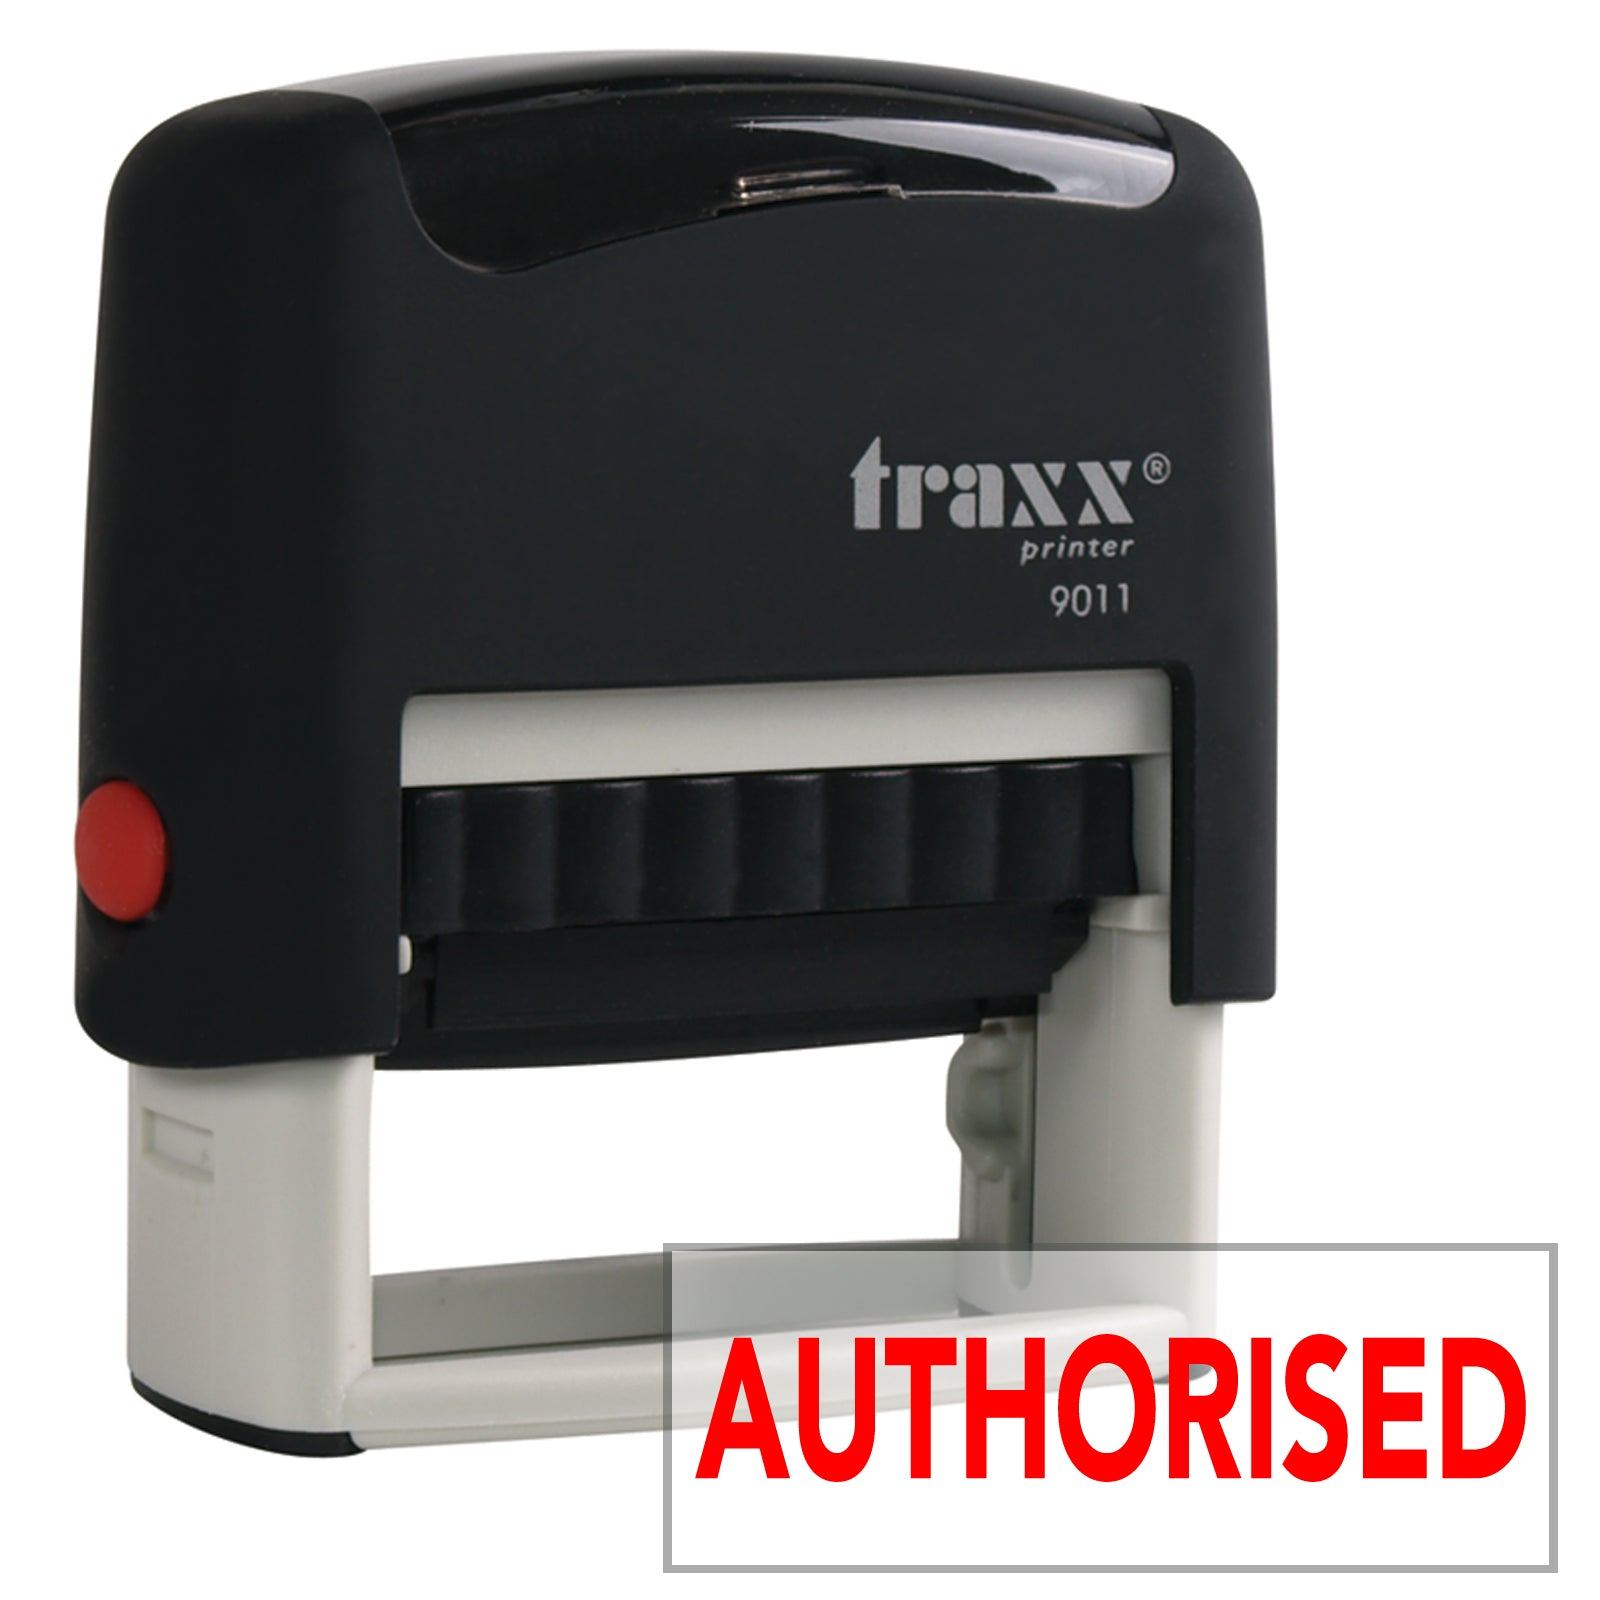 Traxx 9011 38 x 14mm Word Stamp - AUTHORISED